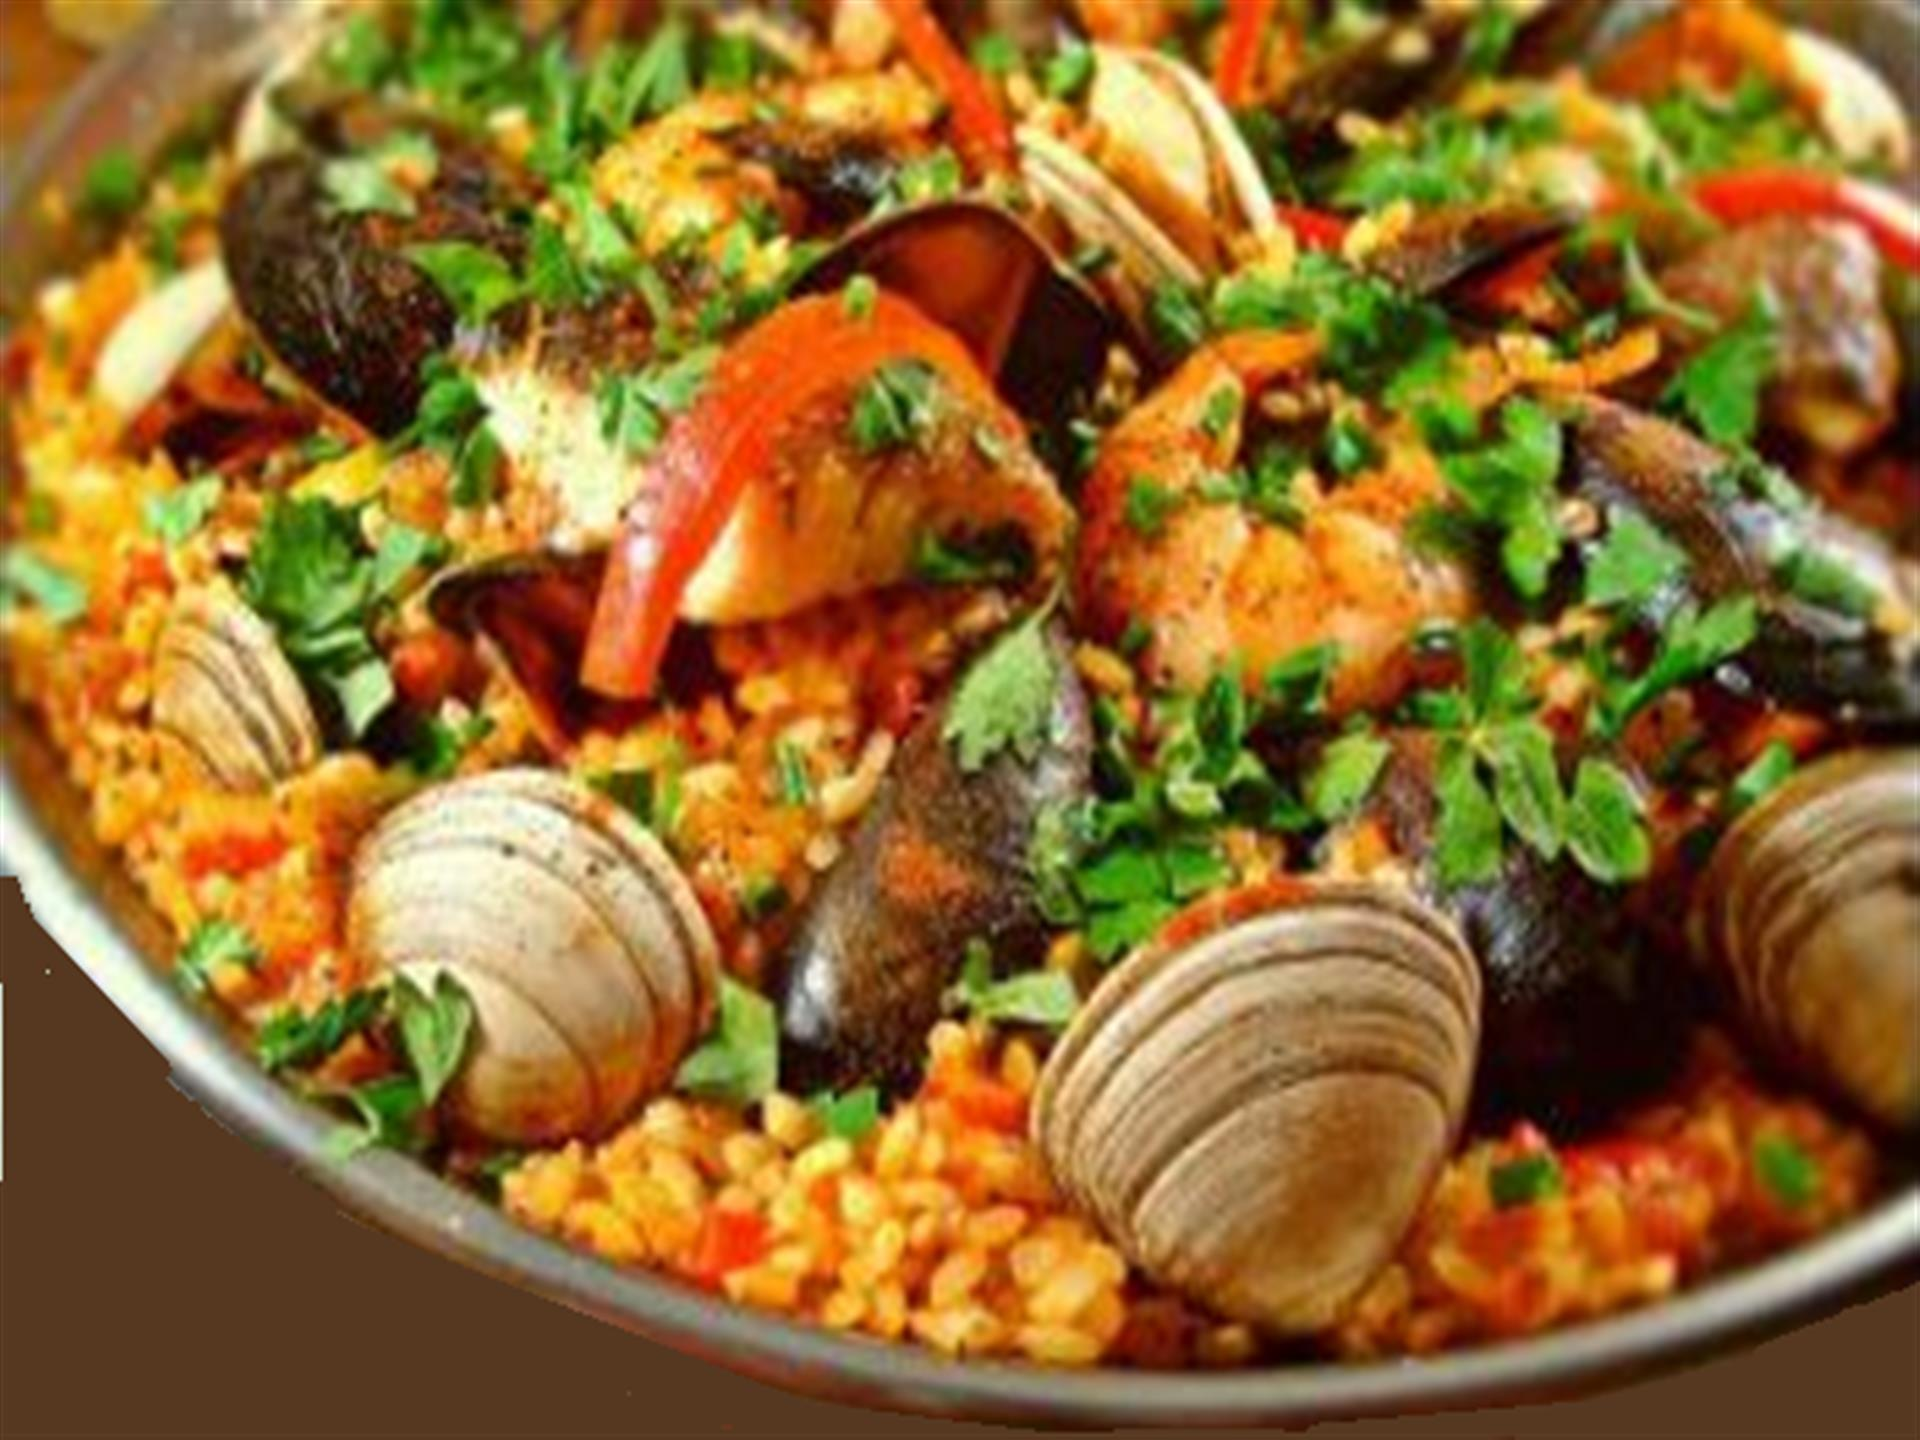 Rice with clams, muscles, shrimp